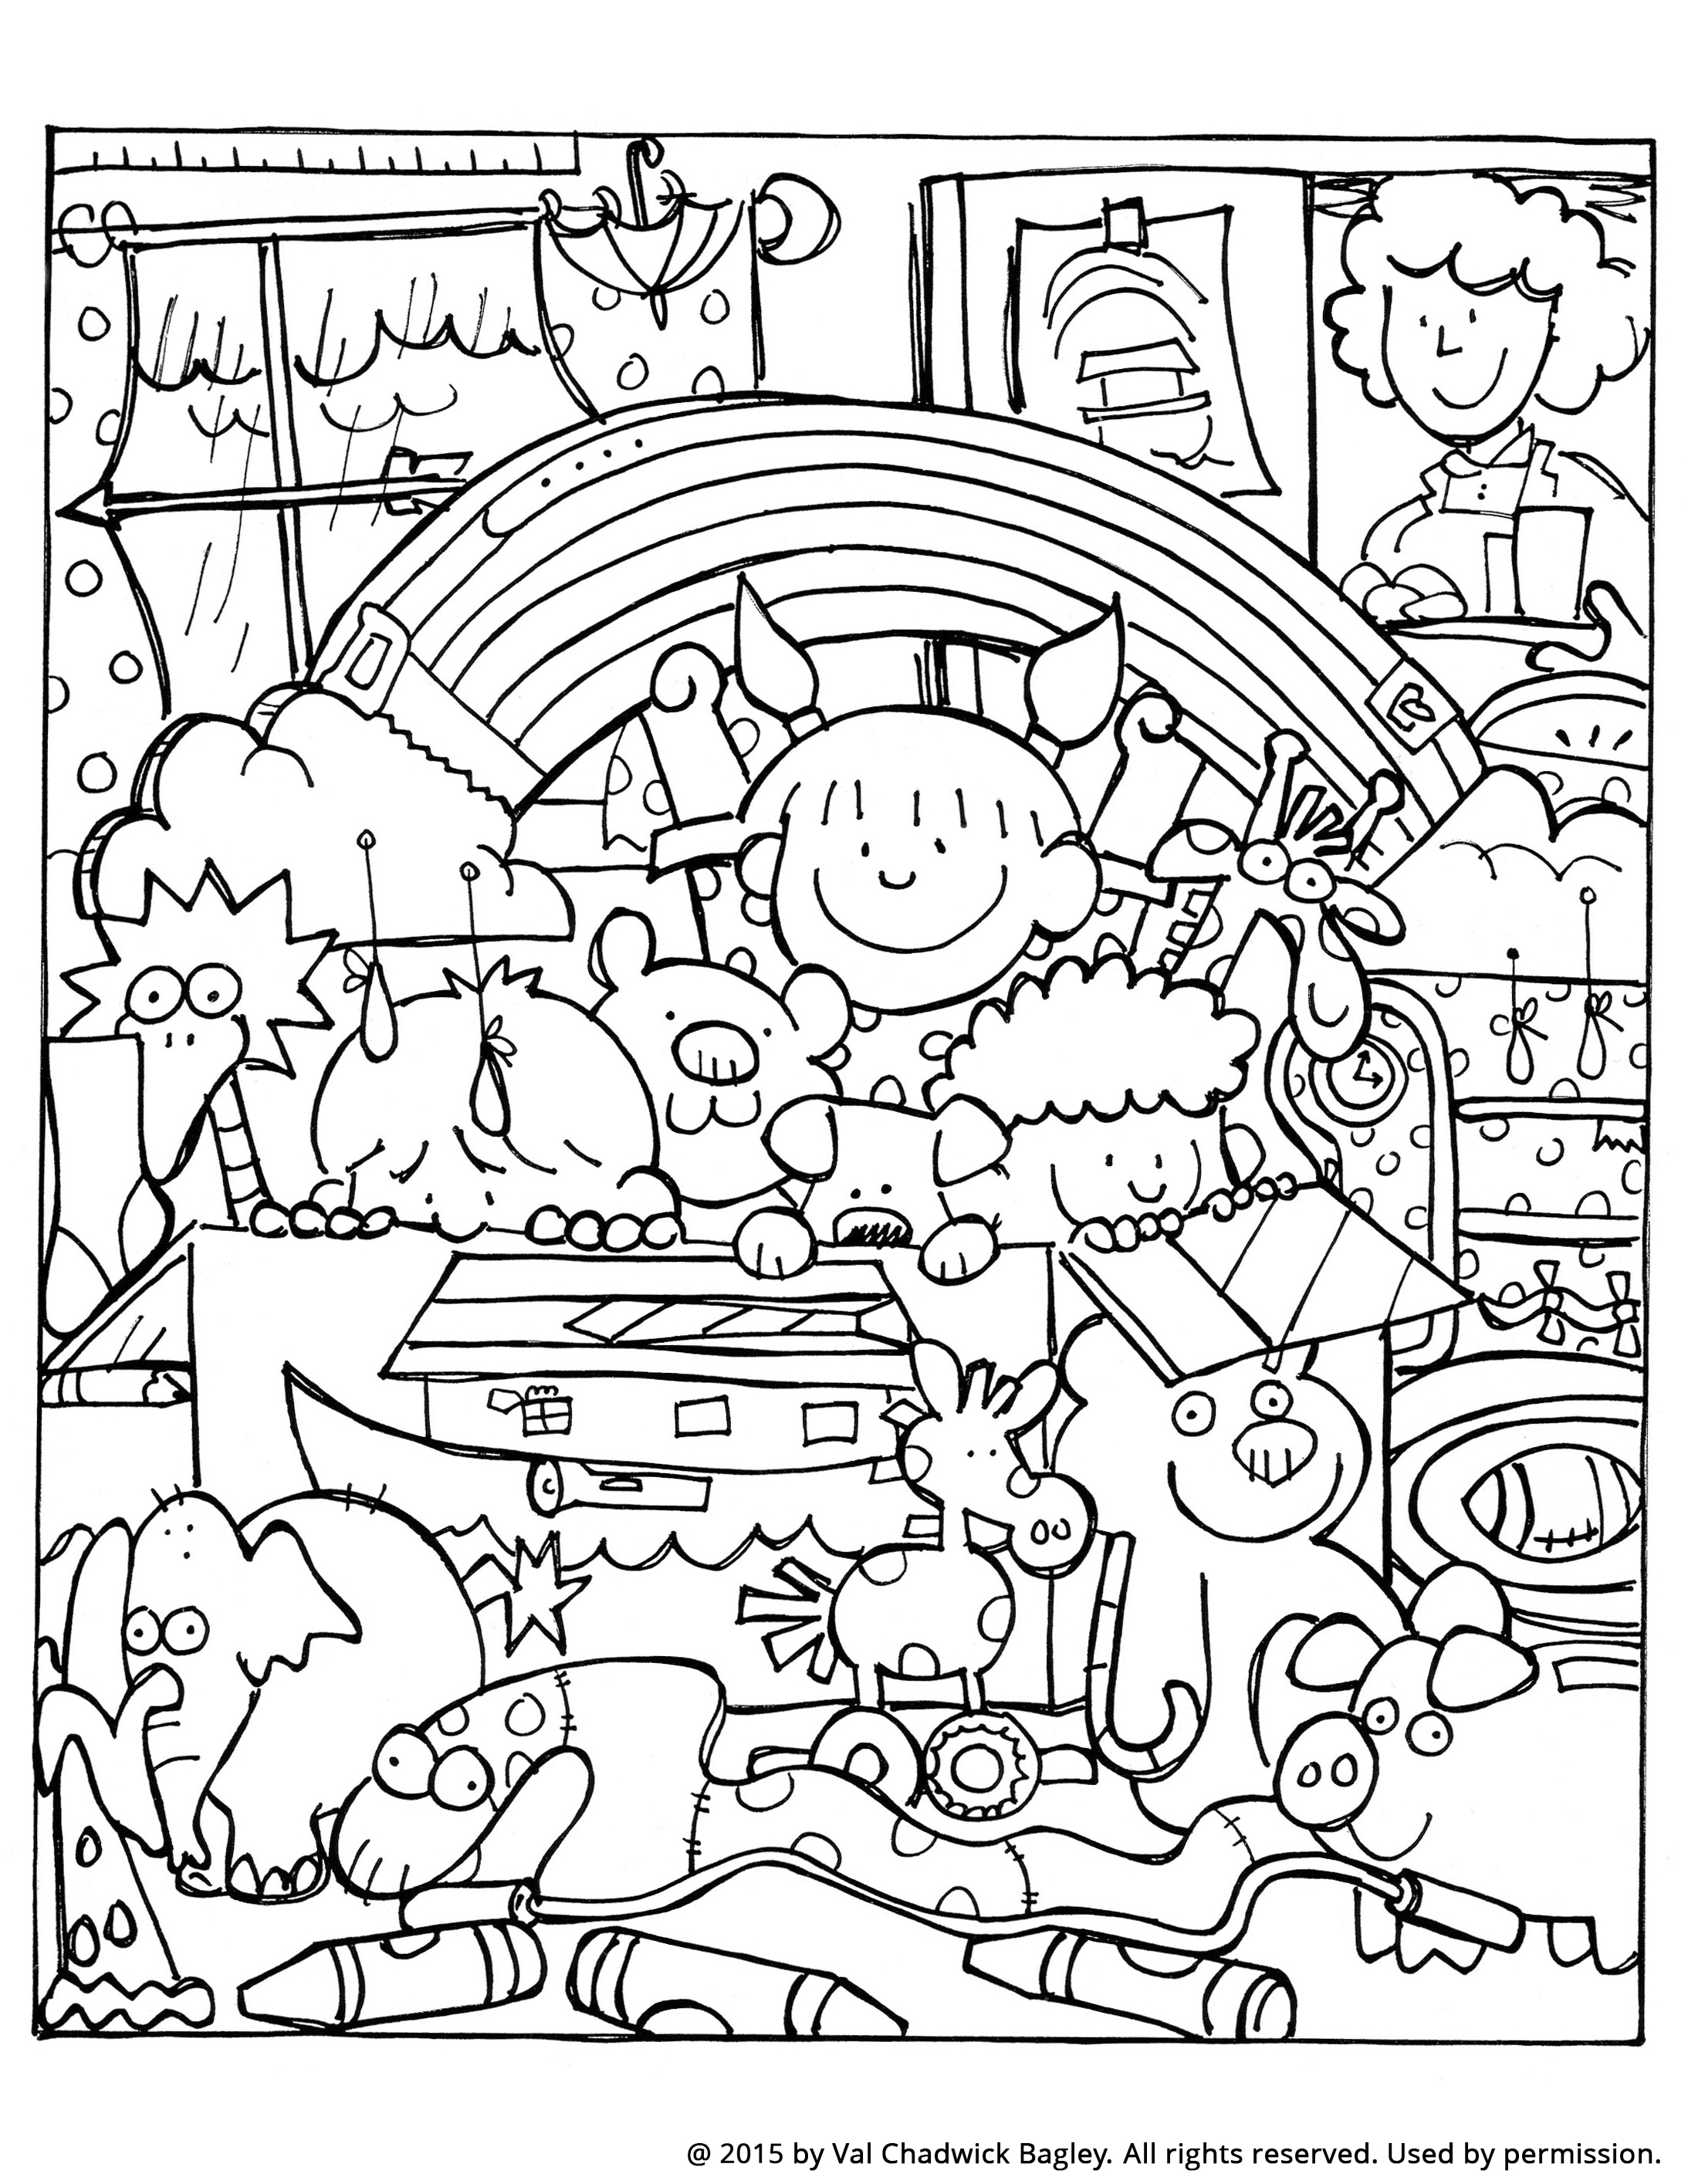 68 Noah ark ideas | noahs ark, coloring pages, bible coloring